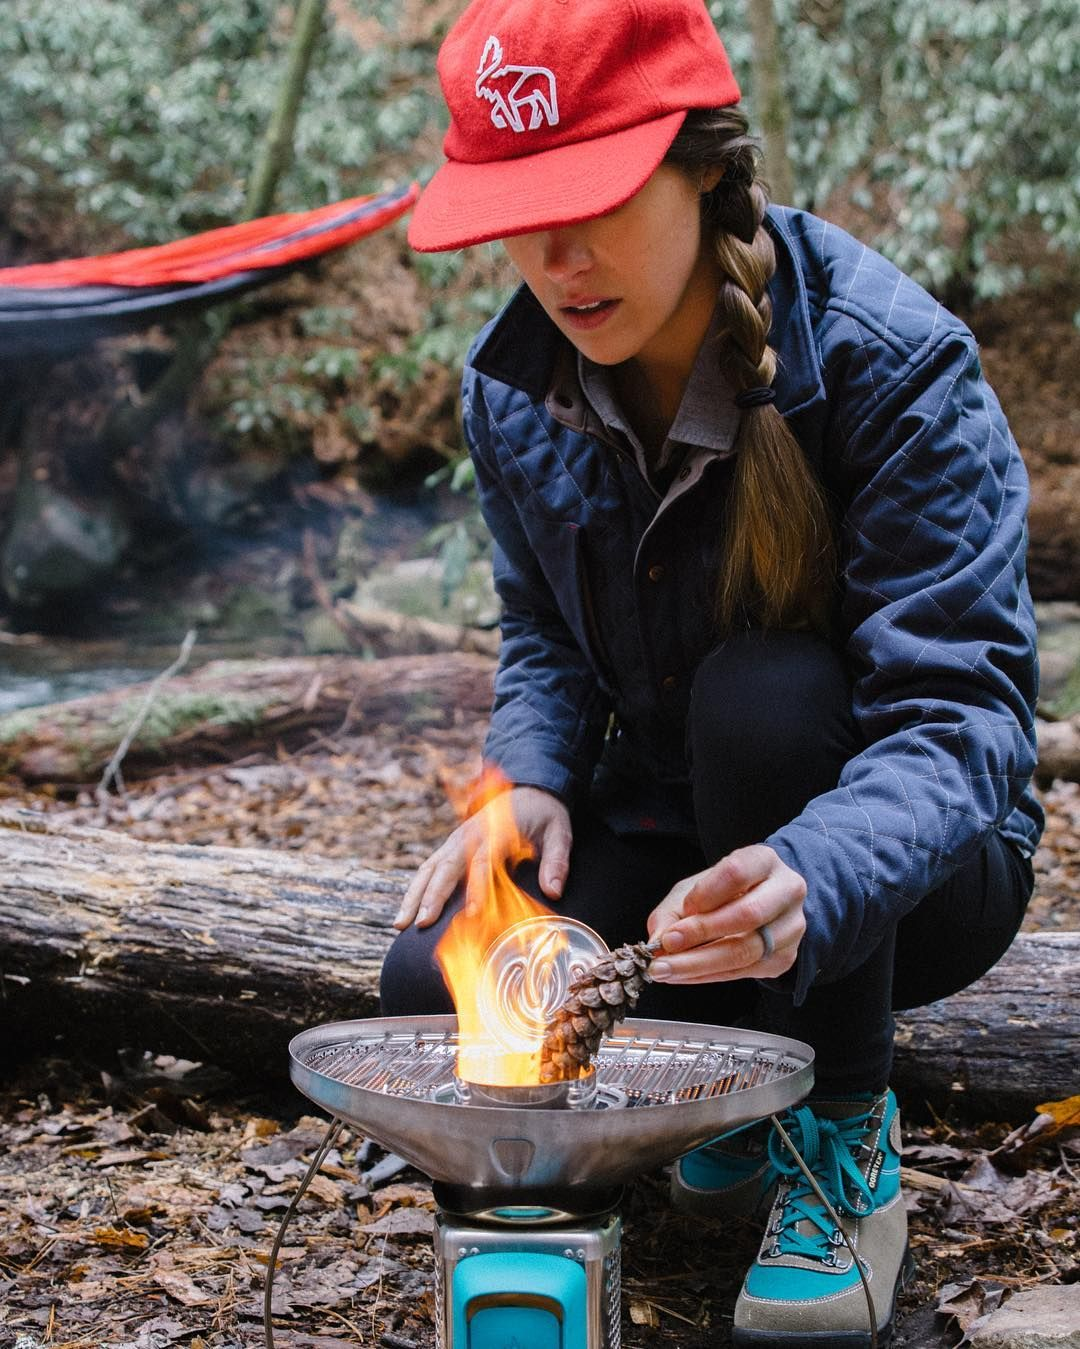 Good food and good company. There's not much better than disconnecting and setting up camp for the weekend.  What's your go-to camp meal? @kellywatters1 in the Silverton Wool Hat and Caribou Quilted Shirt #LivetheMountainLife   #TrustTheWild by western_rise